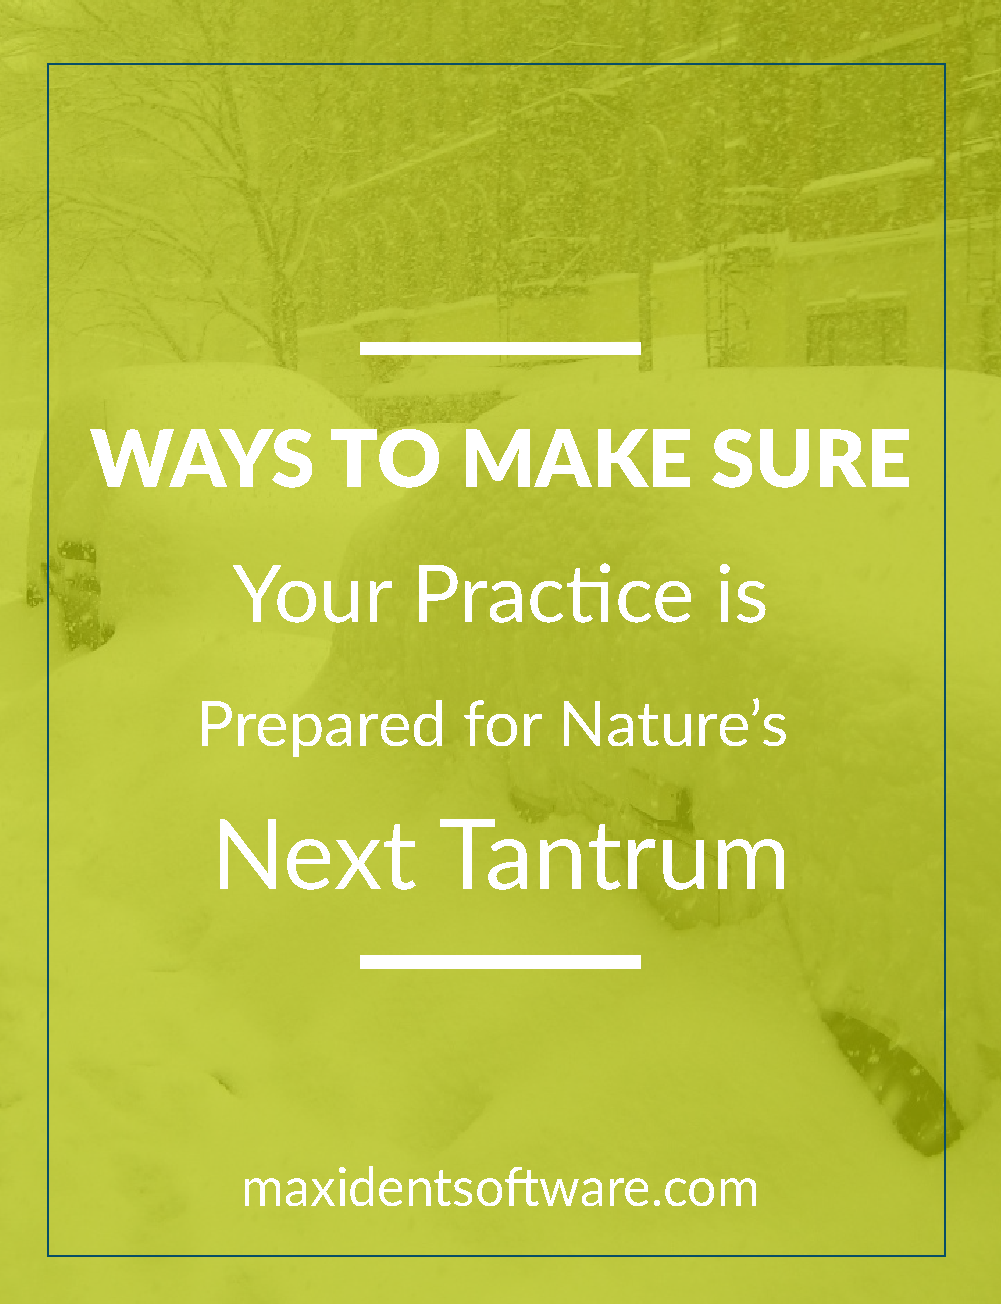 Ways to Make Sure Your Practice is Prepared for Nature's Next Tantrum